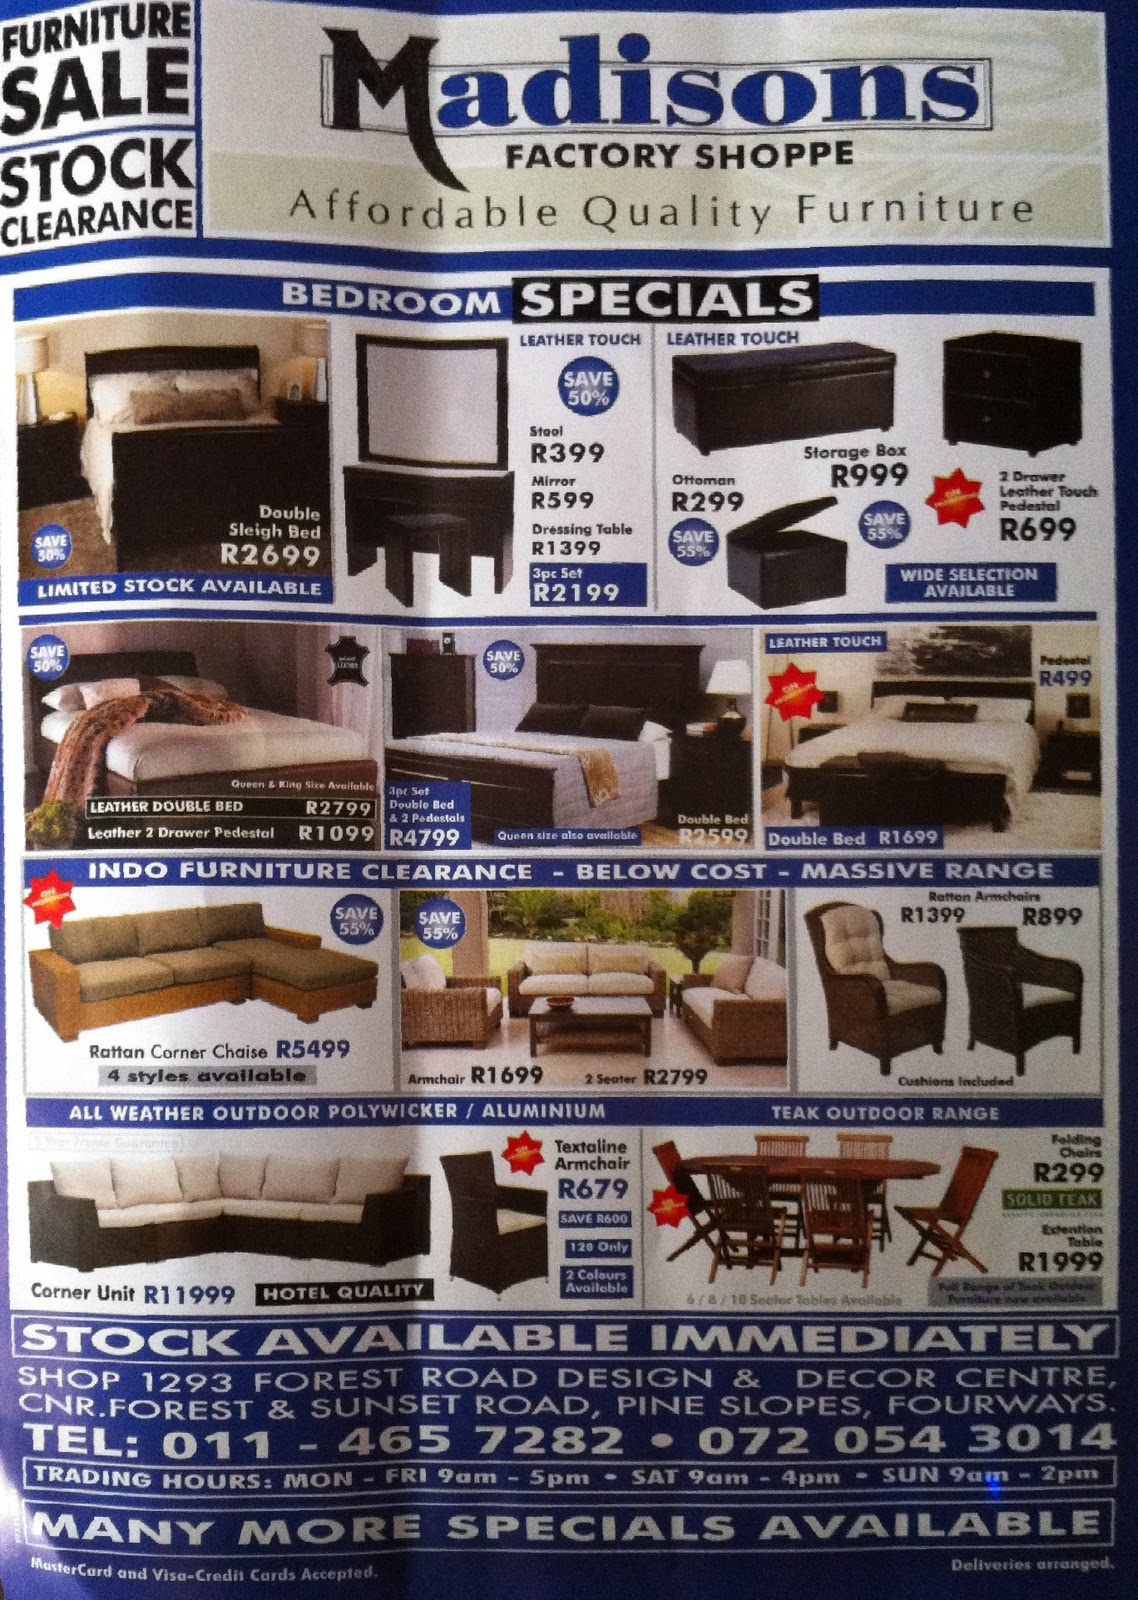 Wonderful Madisons Factory Shop  Affordable Quality Furniture